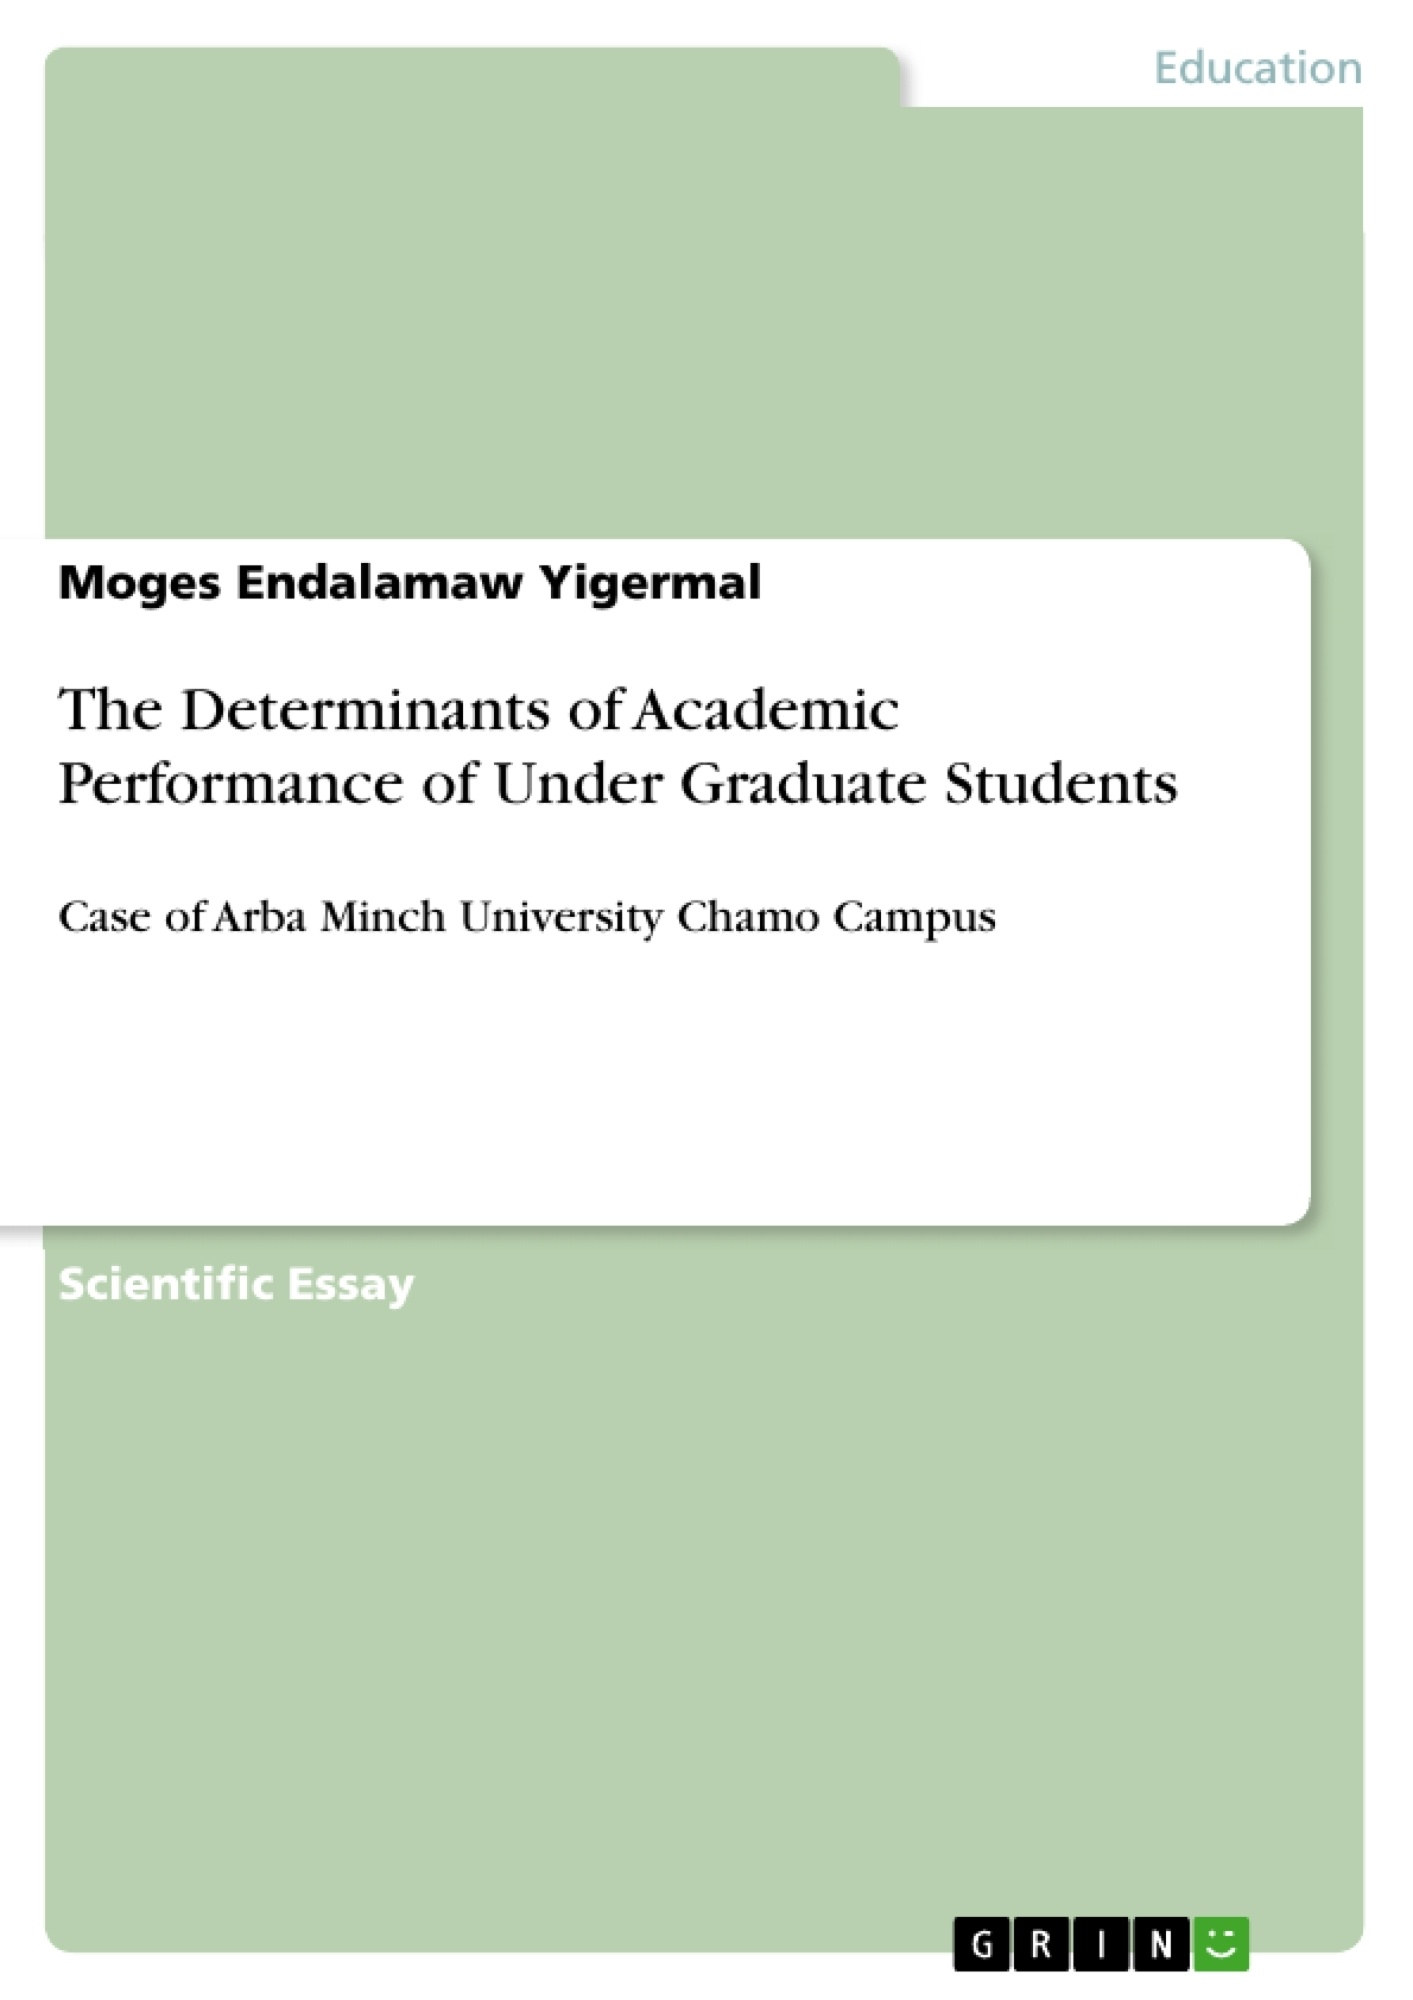 GRIN - The Determinants of Academic Performance of Under Graduate Students